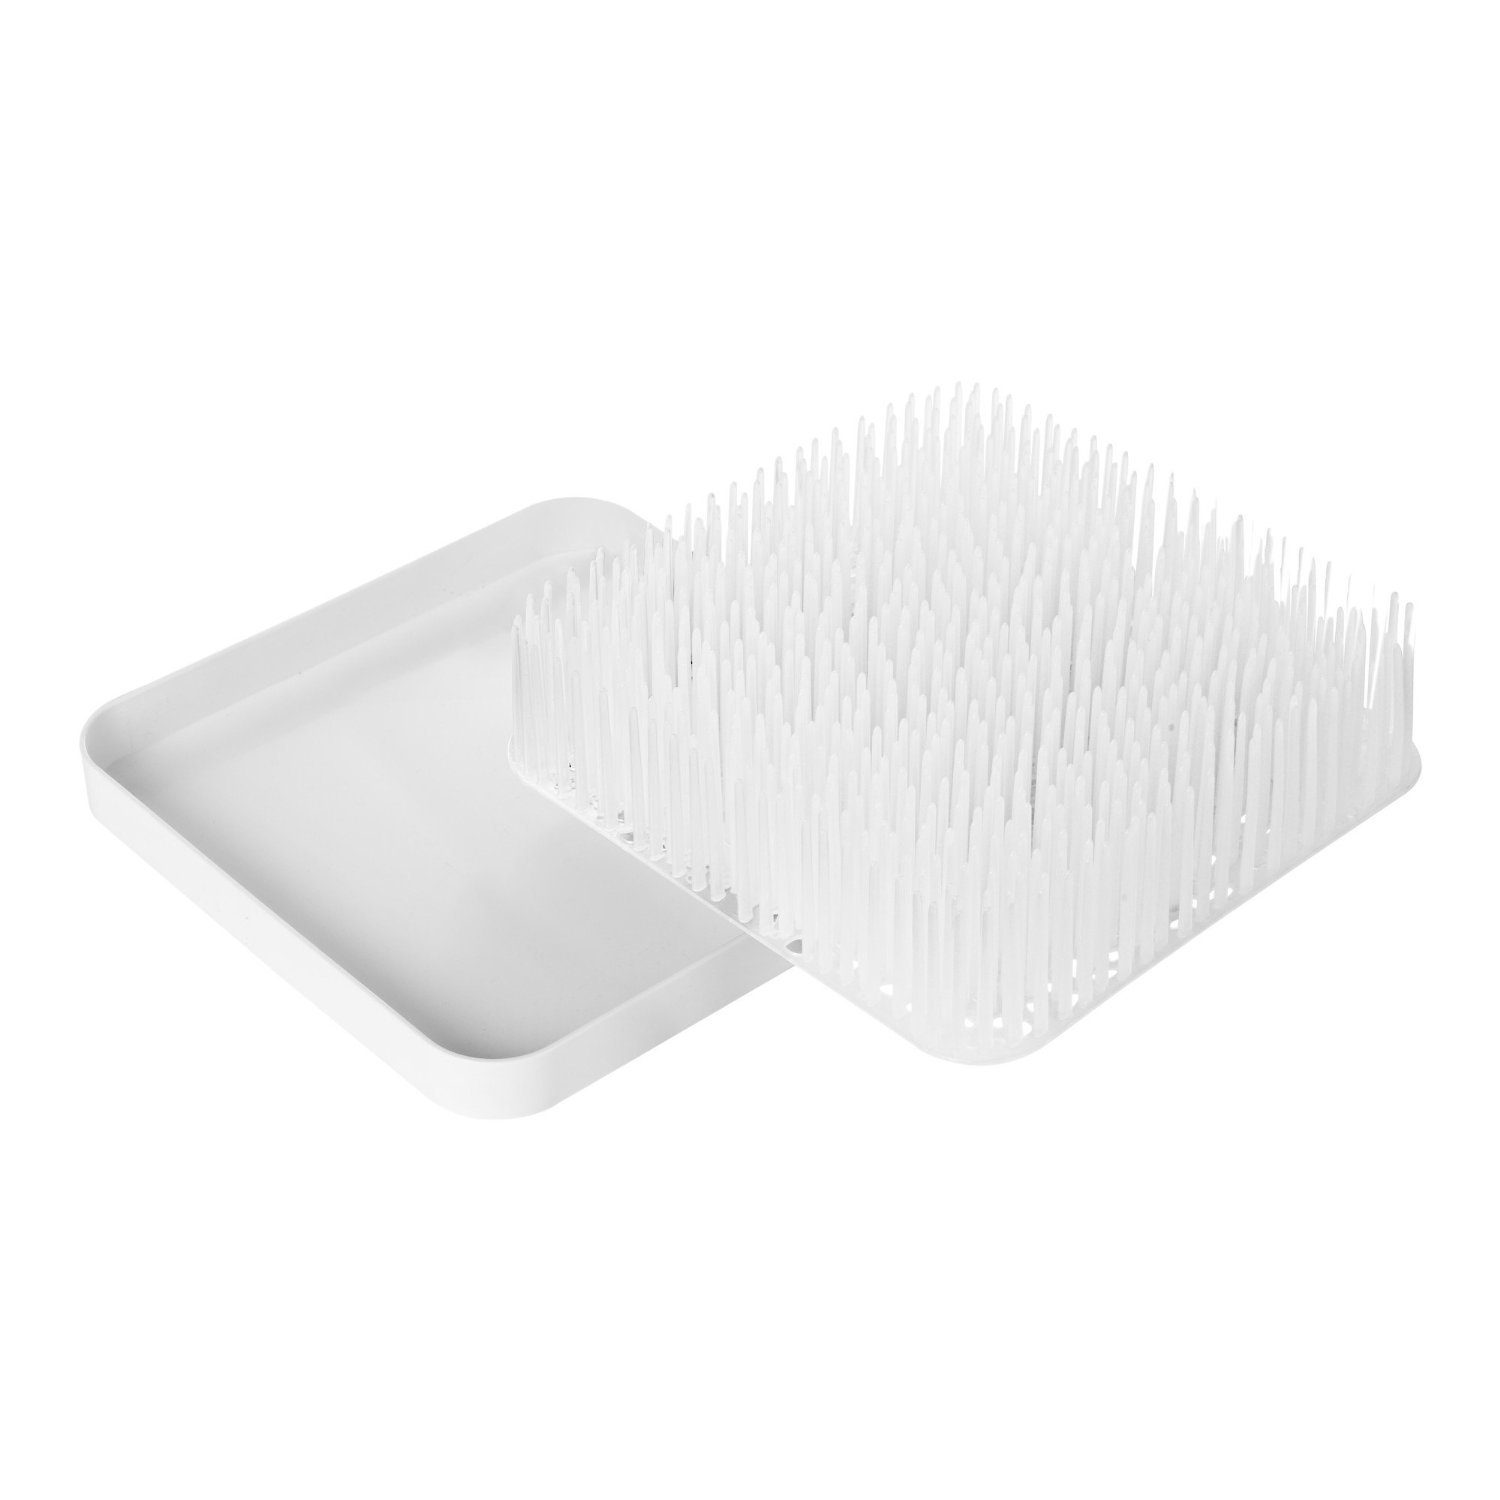 Boon Winter Grass Countertop Bottle Drying Rack one size, White